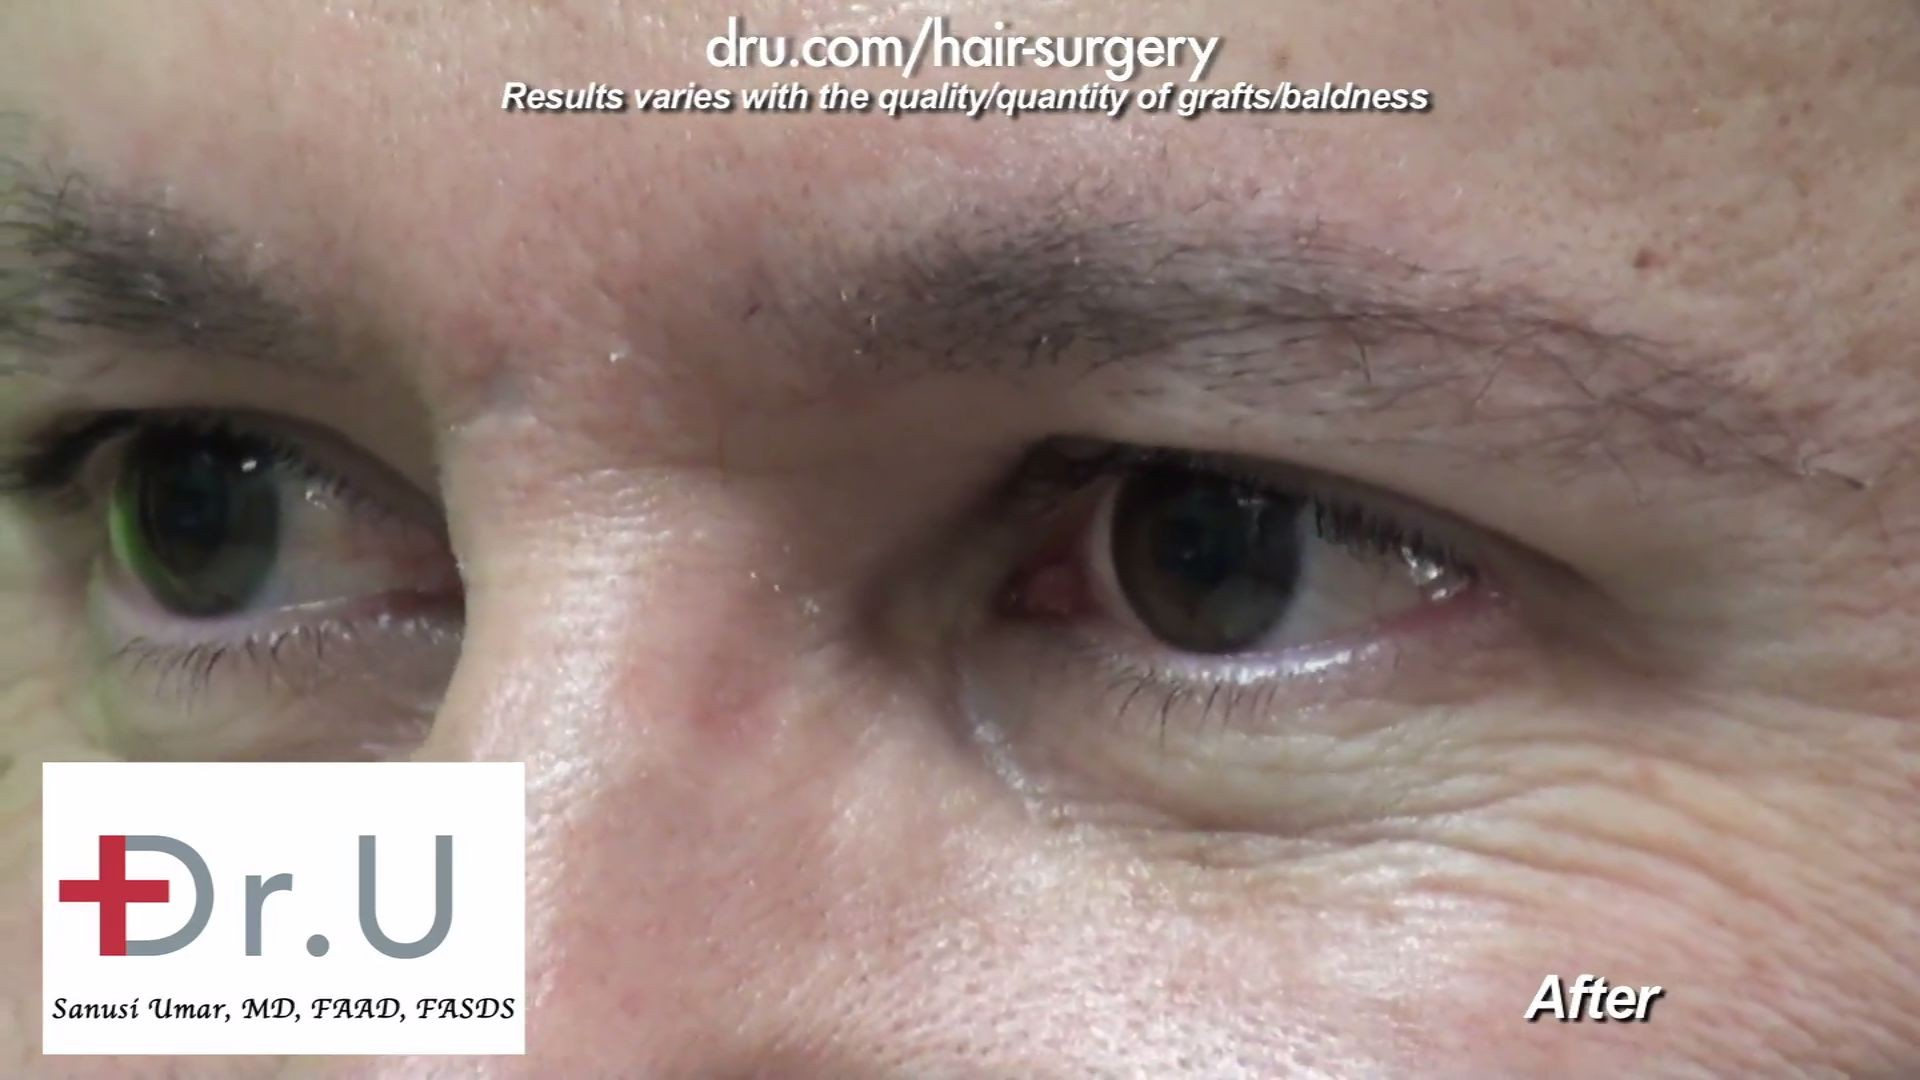 The patient opted for a more inconspicuous eyebrow restoration, so Dr. U used 300 grafts to create a fuller brow. The result of the male eyebrow transplant is a more youthful appearance.